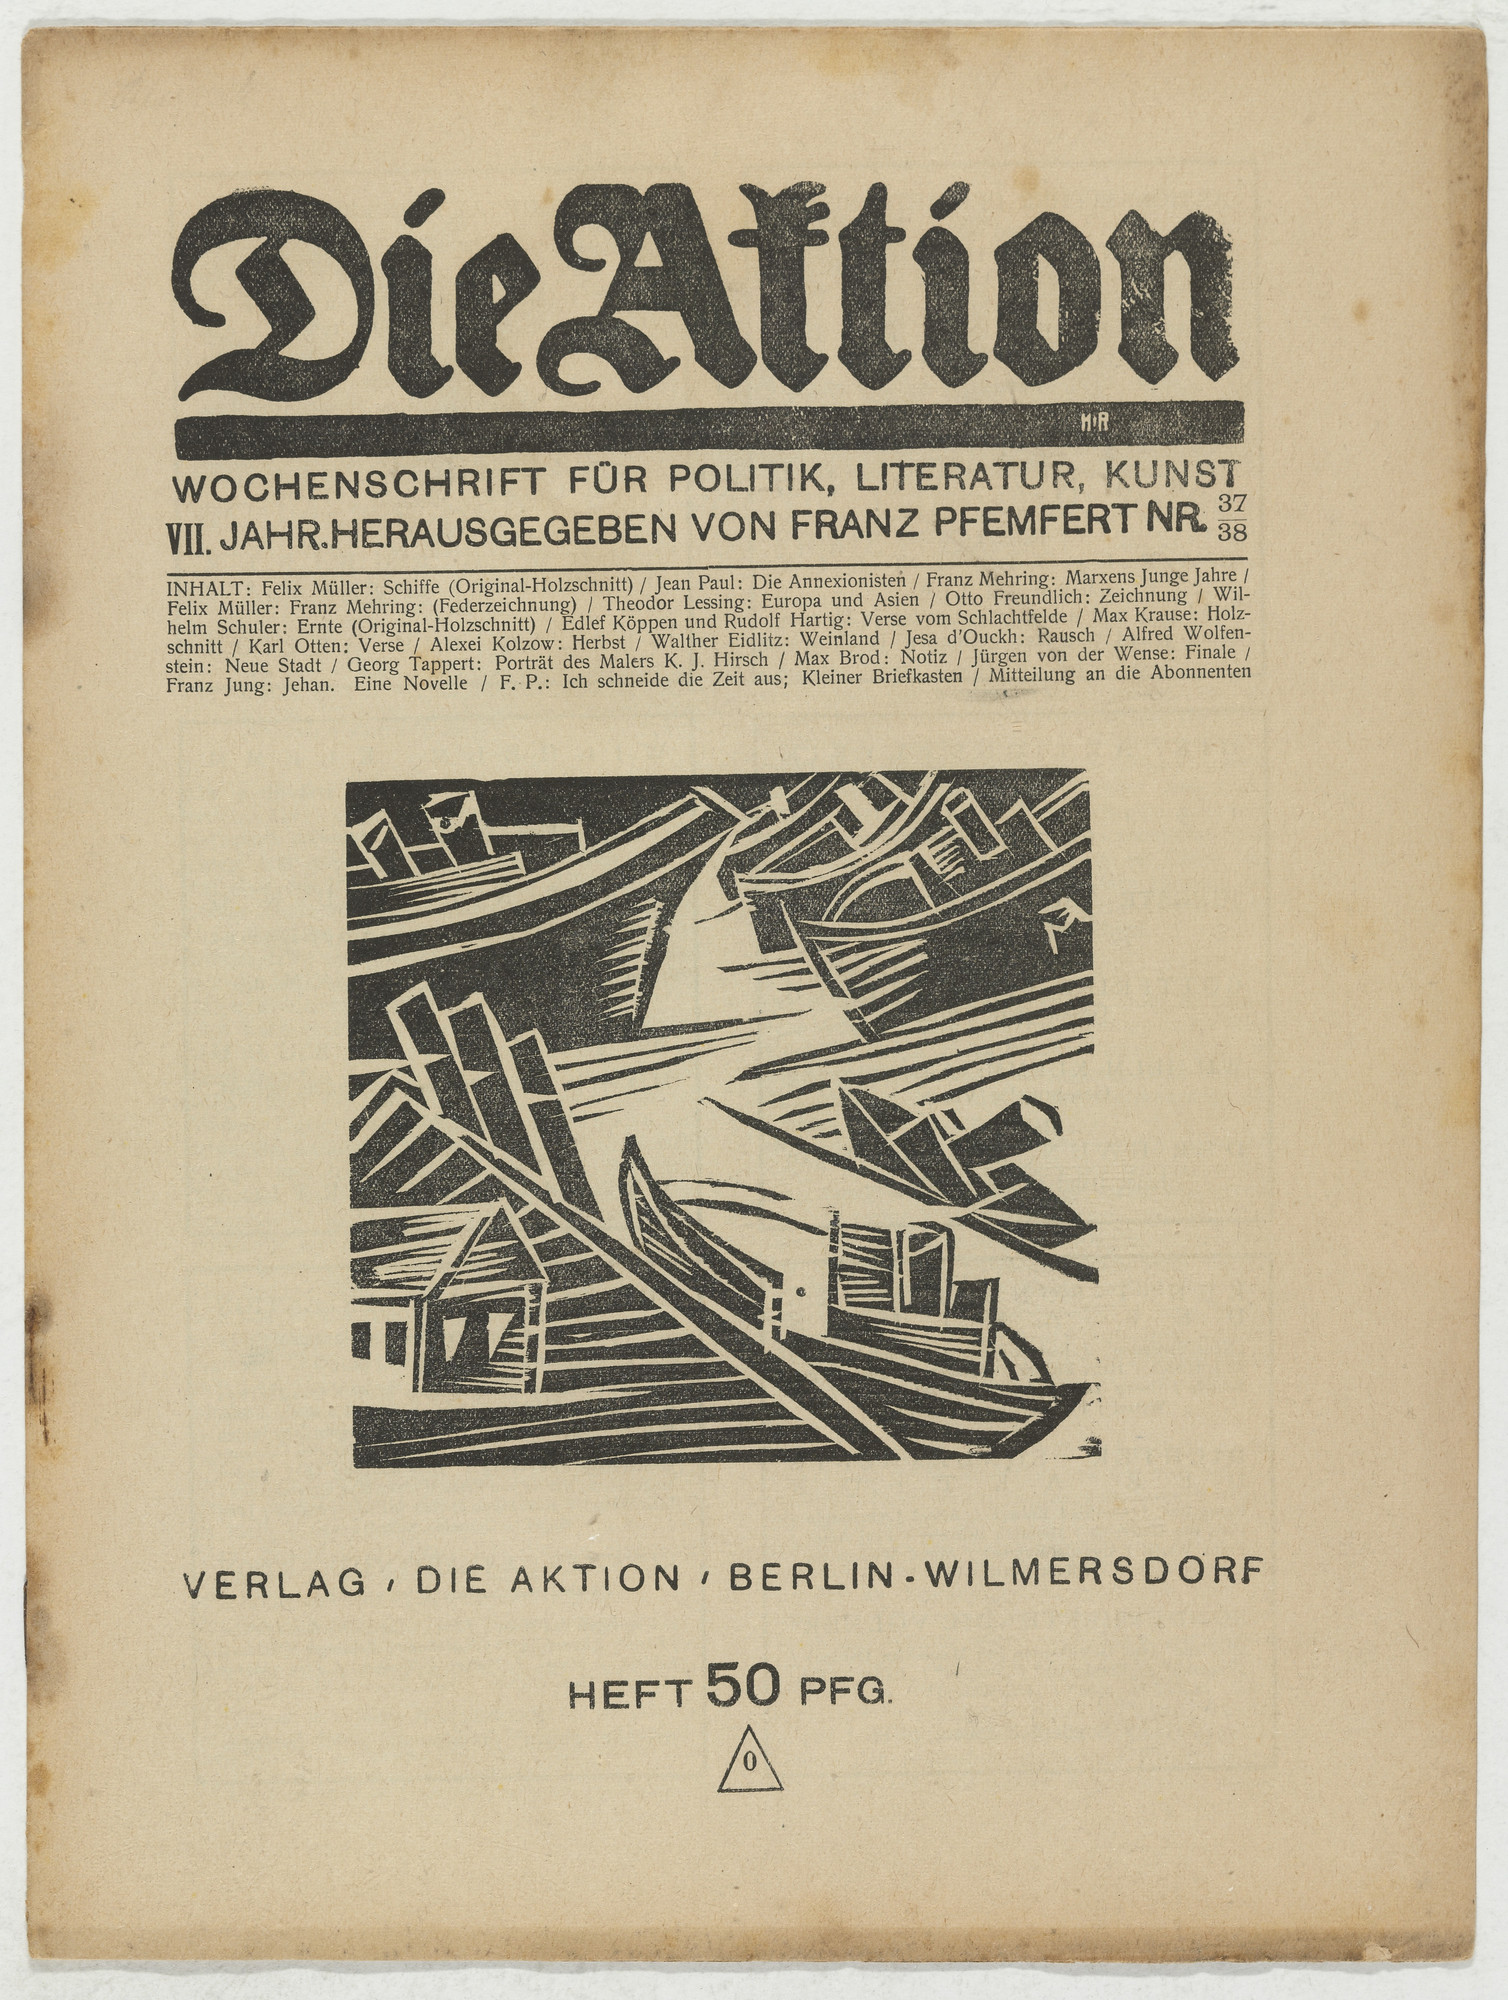 Conrad Felixmüller, Wilhelm Schuler. Die Aktion, vol. 7, no. 37/38. September 22, 1917